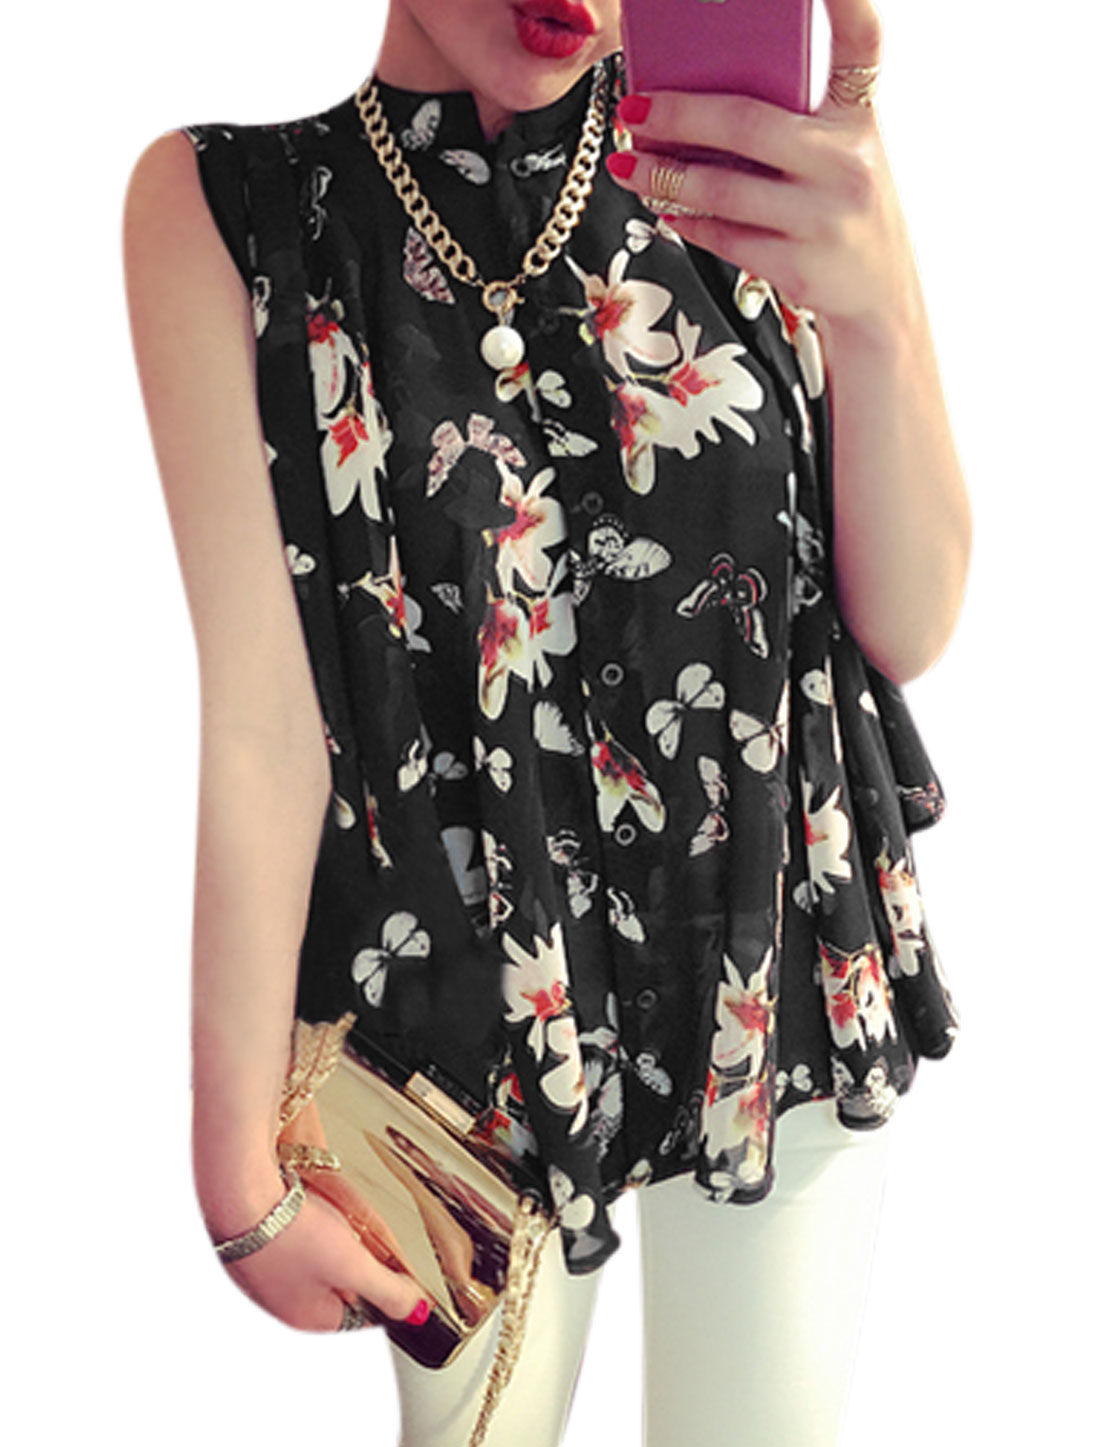 Woman Floral Prints Stand Collar Button Down Sleeveless Chiffon Blouse Black S